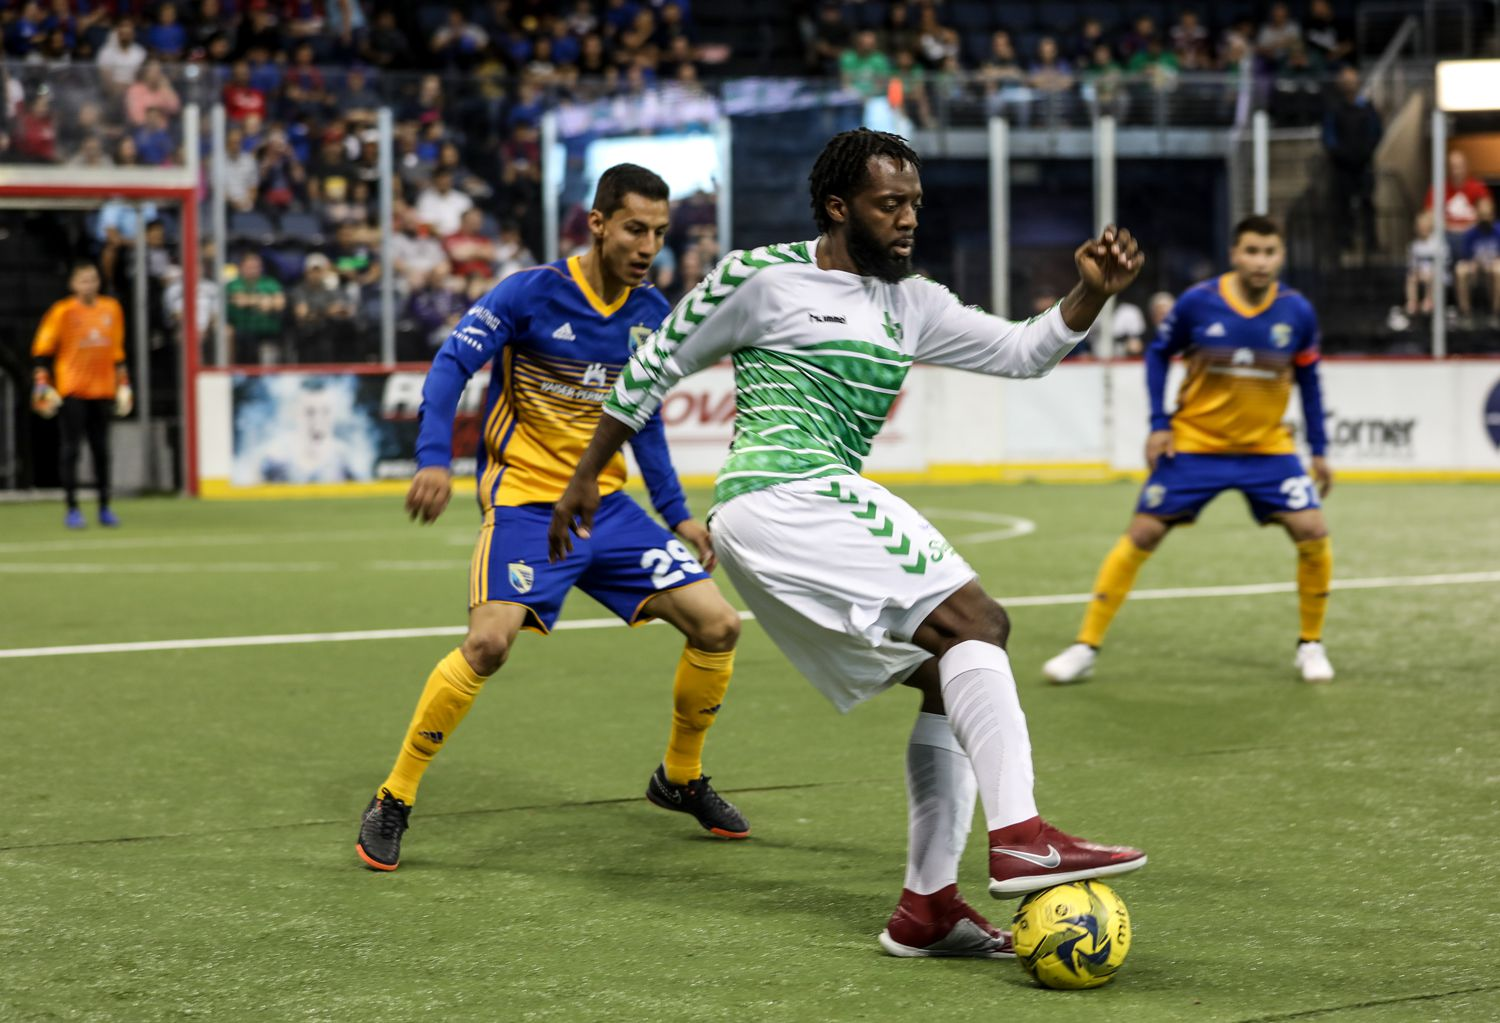 VcMor Eligwe tires to back down his Sockers defender. (3-24-19)